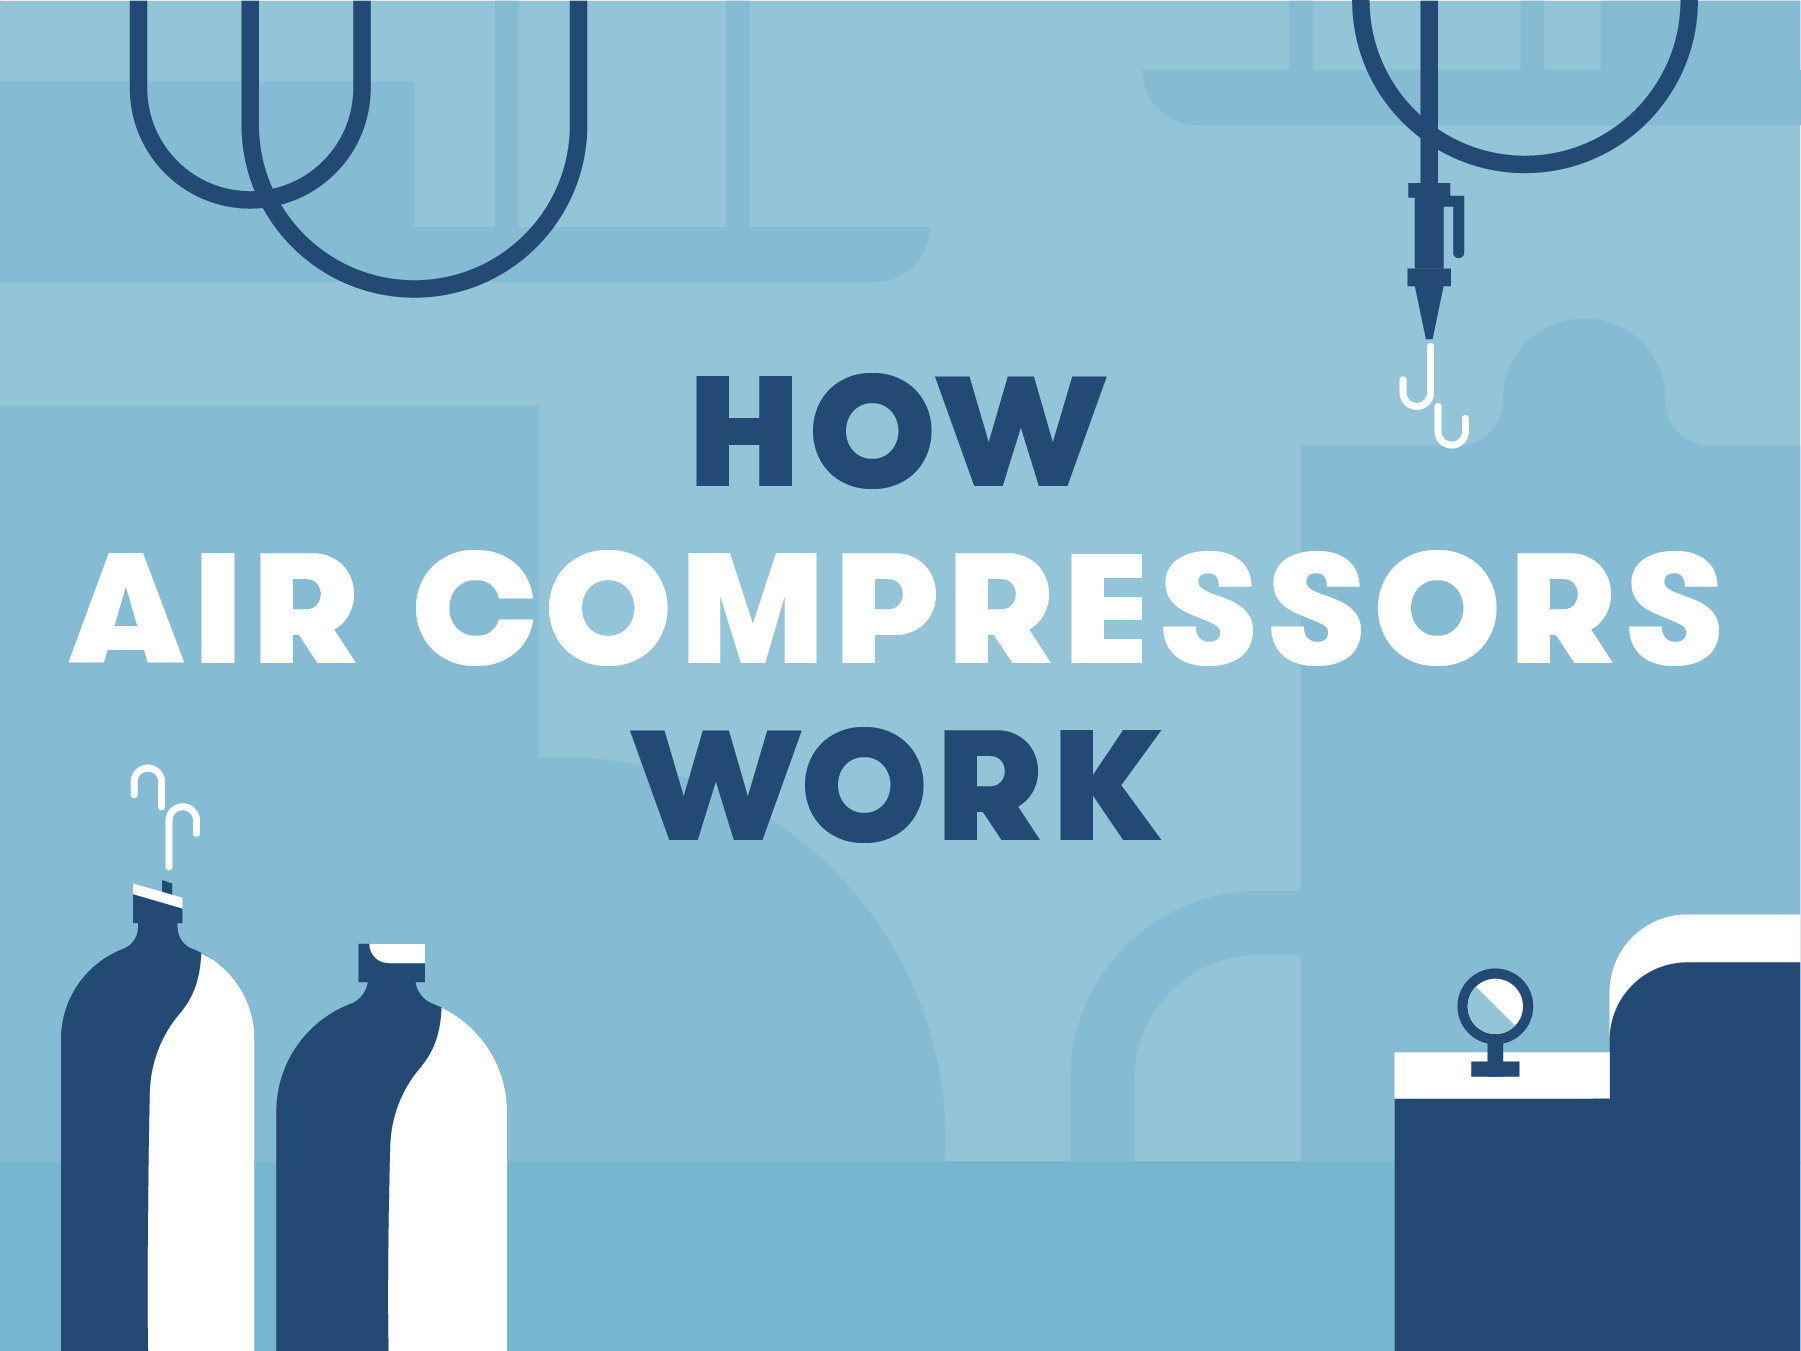 How Air Compressors Work: An Animated Guide